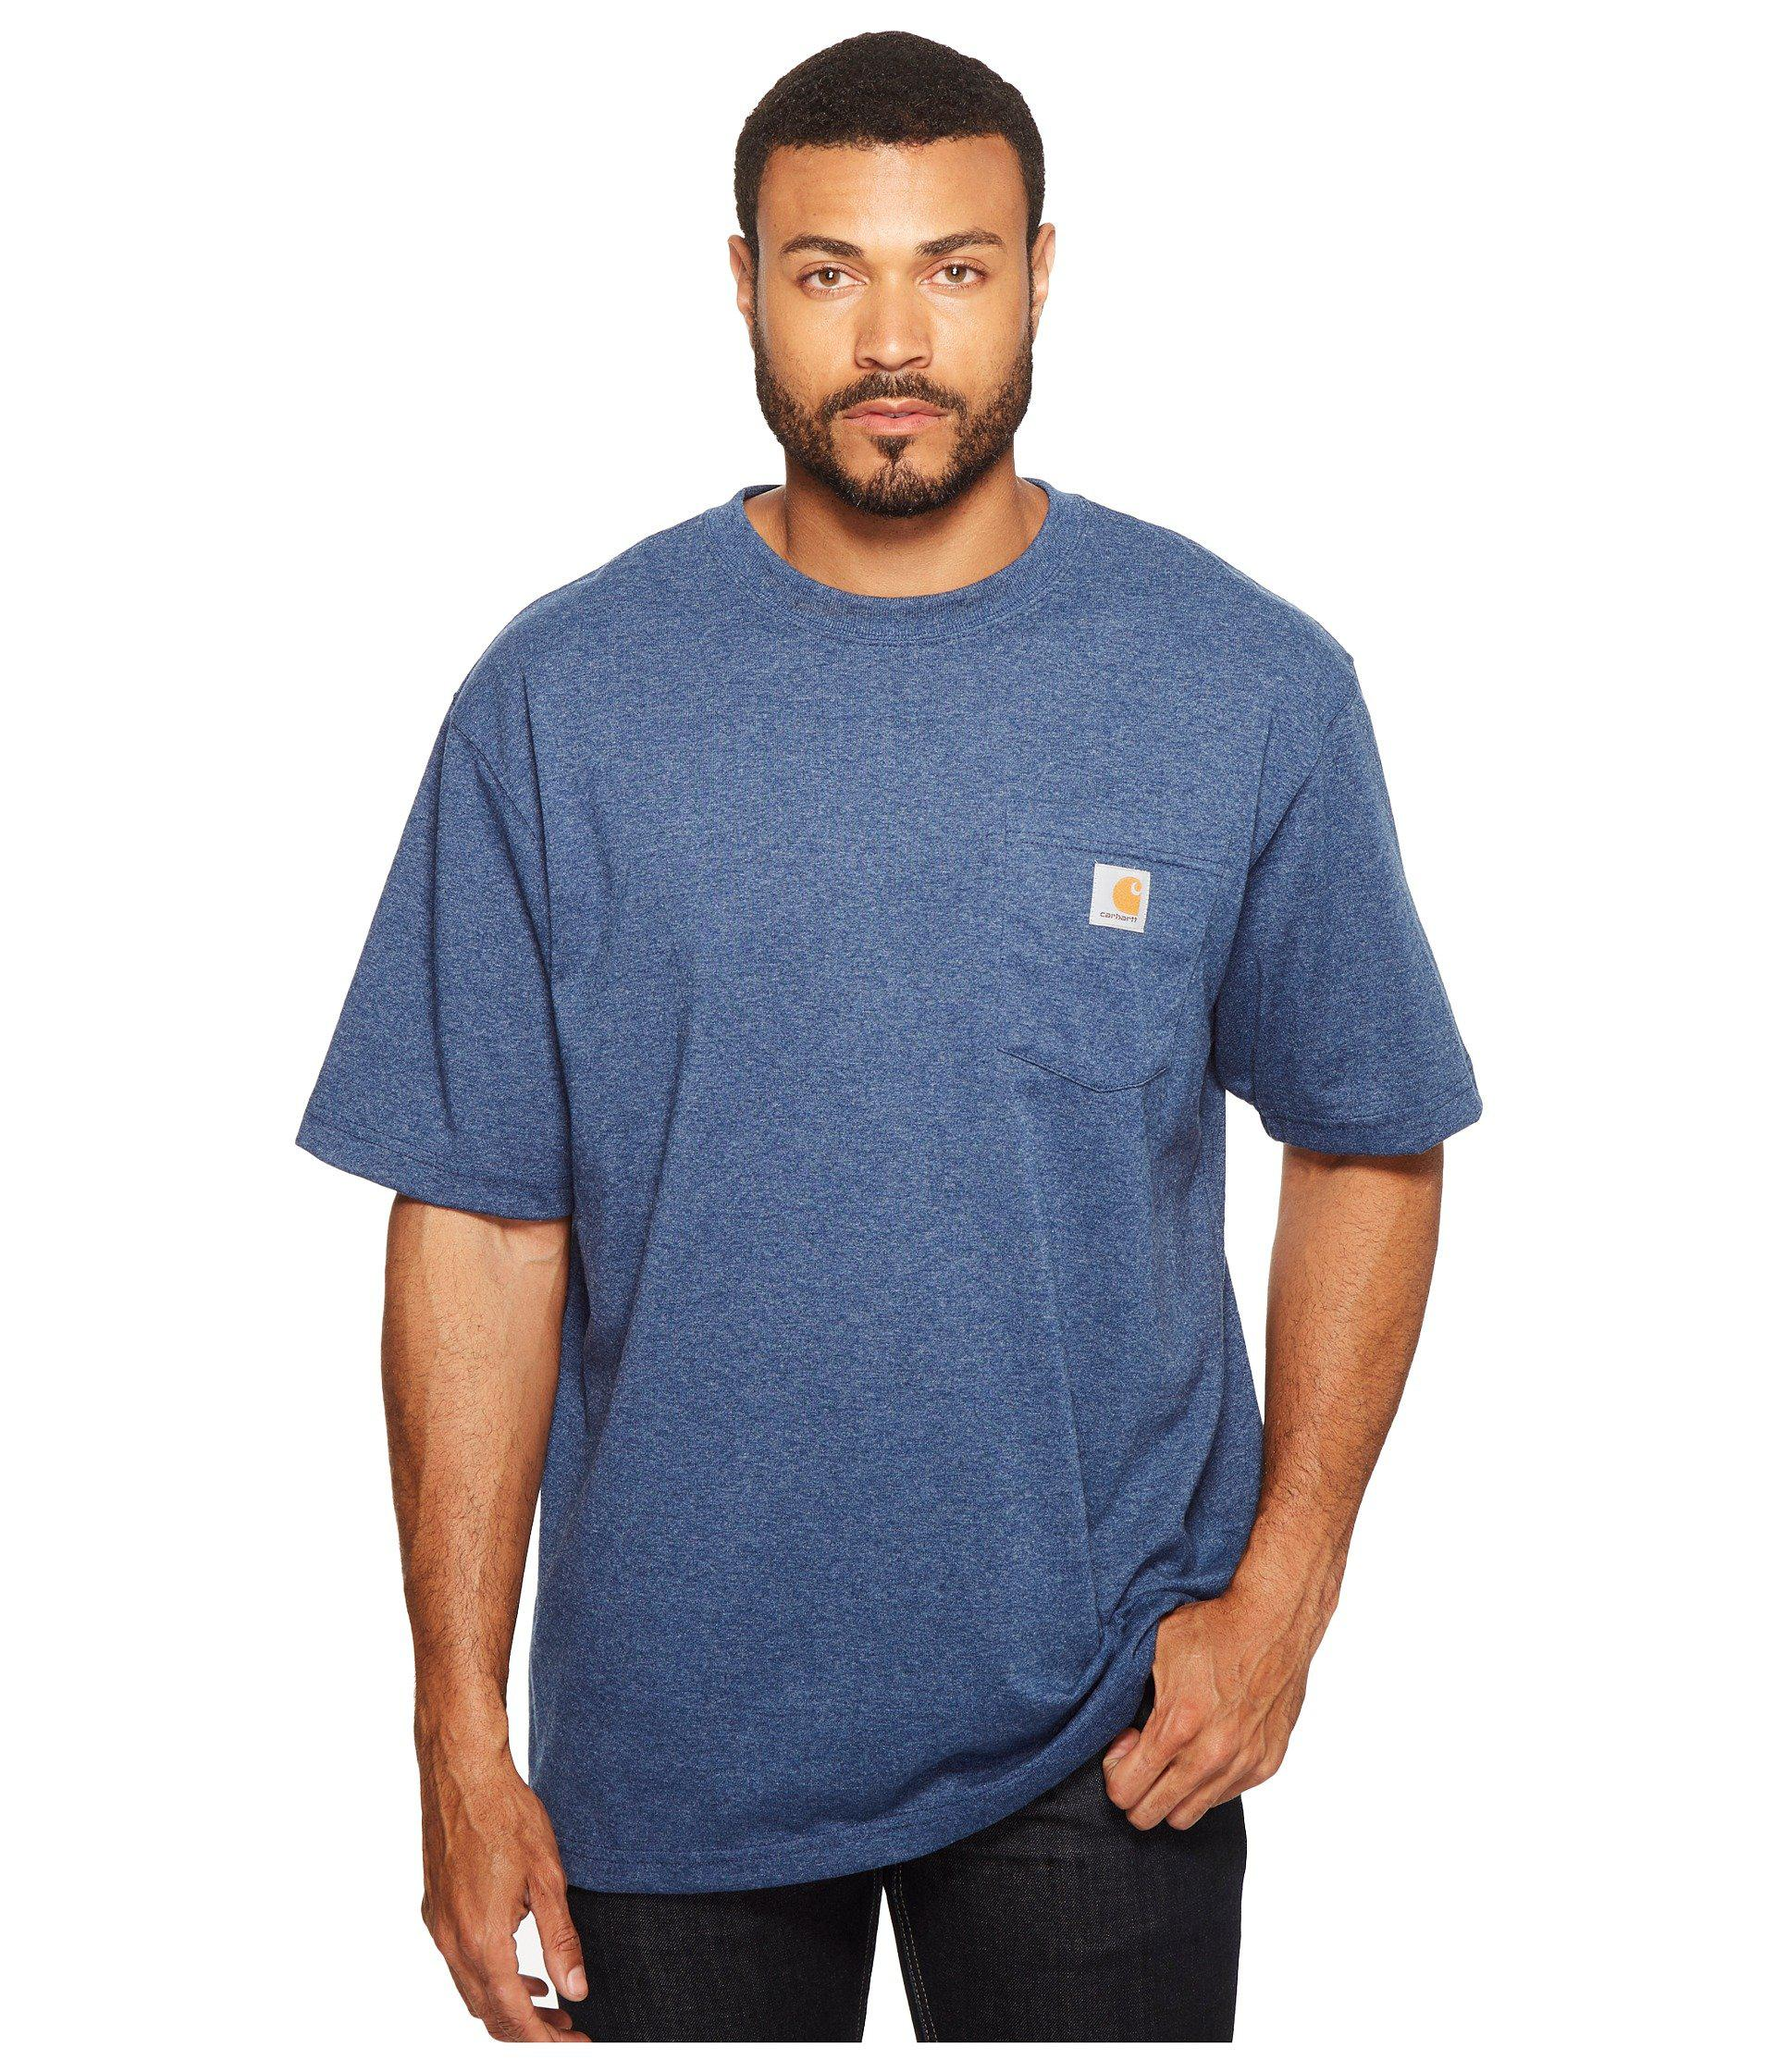 c130d261e1 Carhartt Pocket T Shirts Tall – EDGE Engineering and Consulting Limited